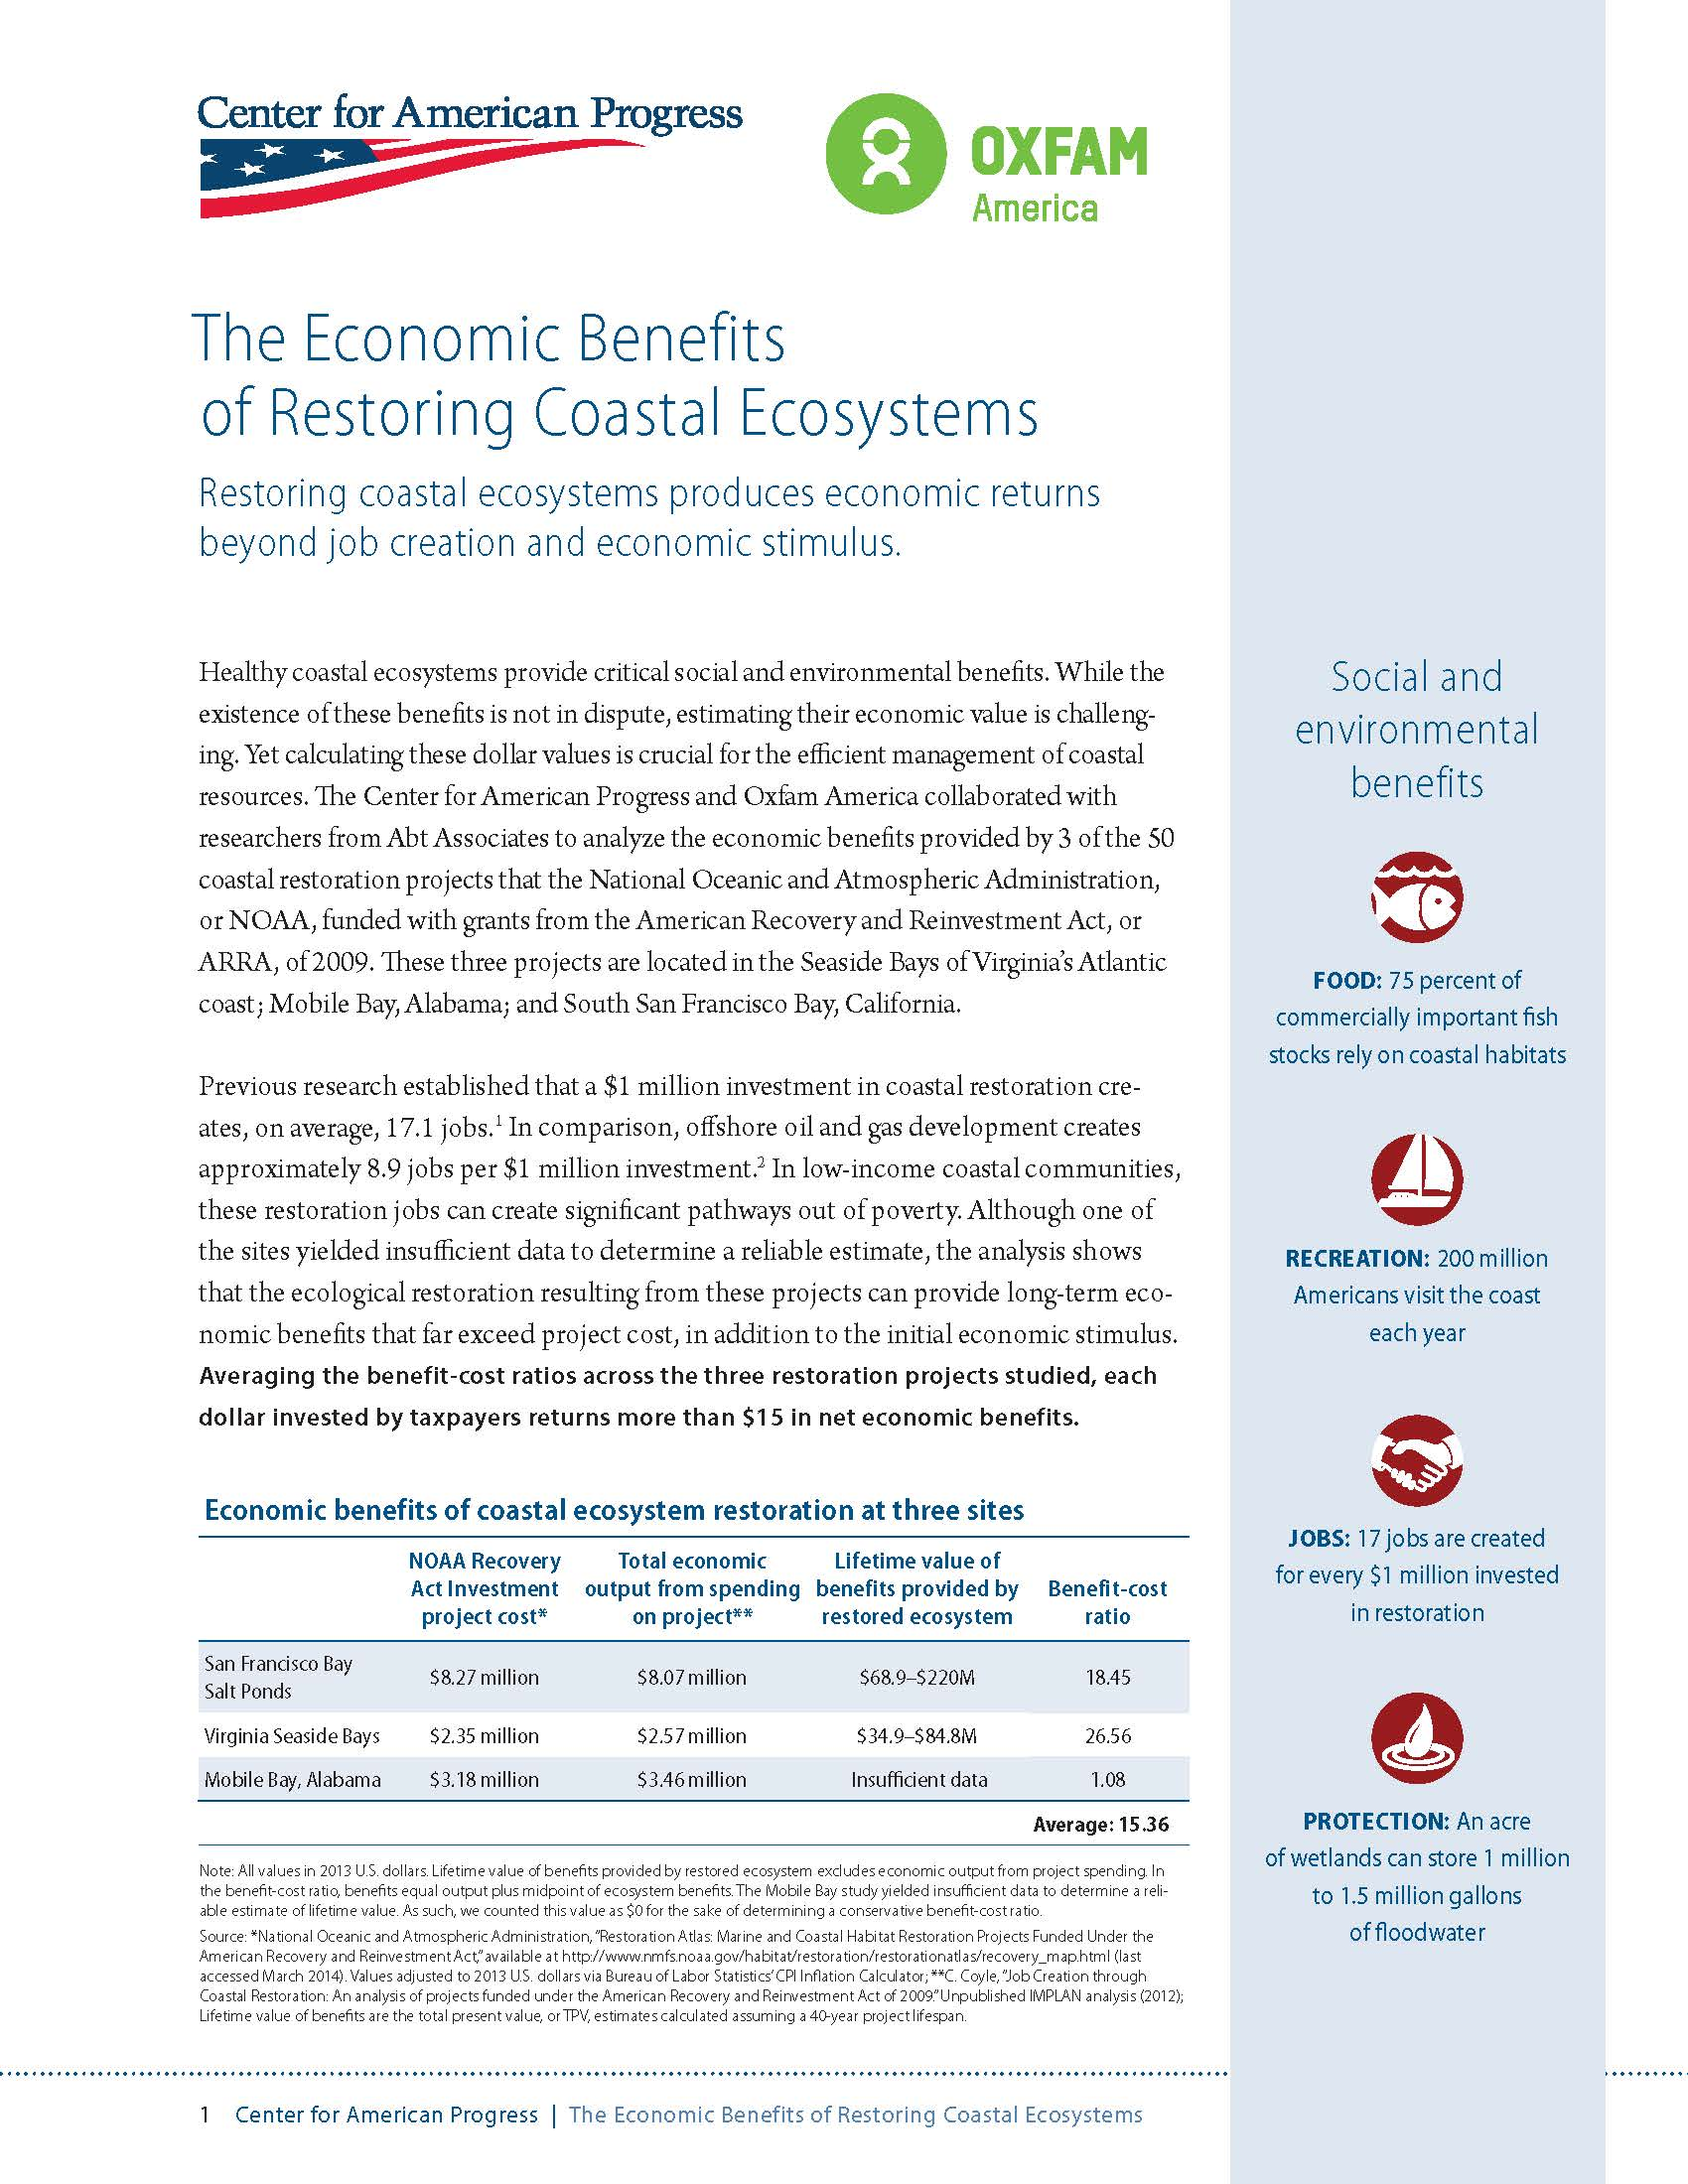 The Economic Benefits of Restoring Coastal Ecosystems